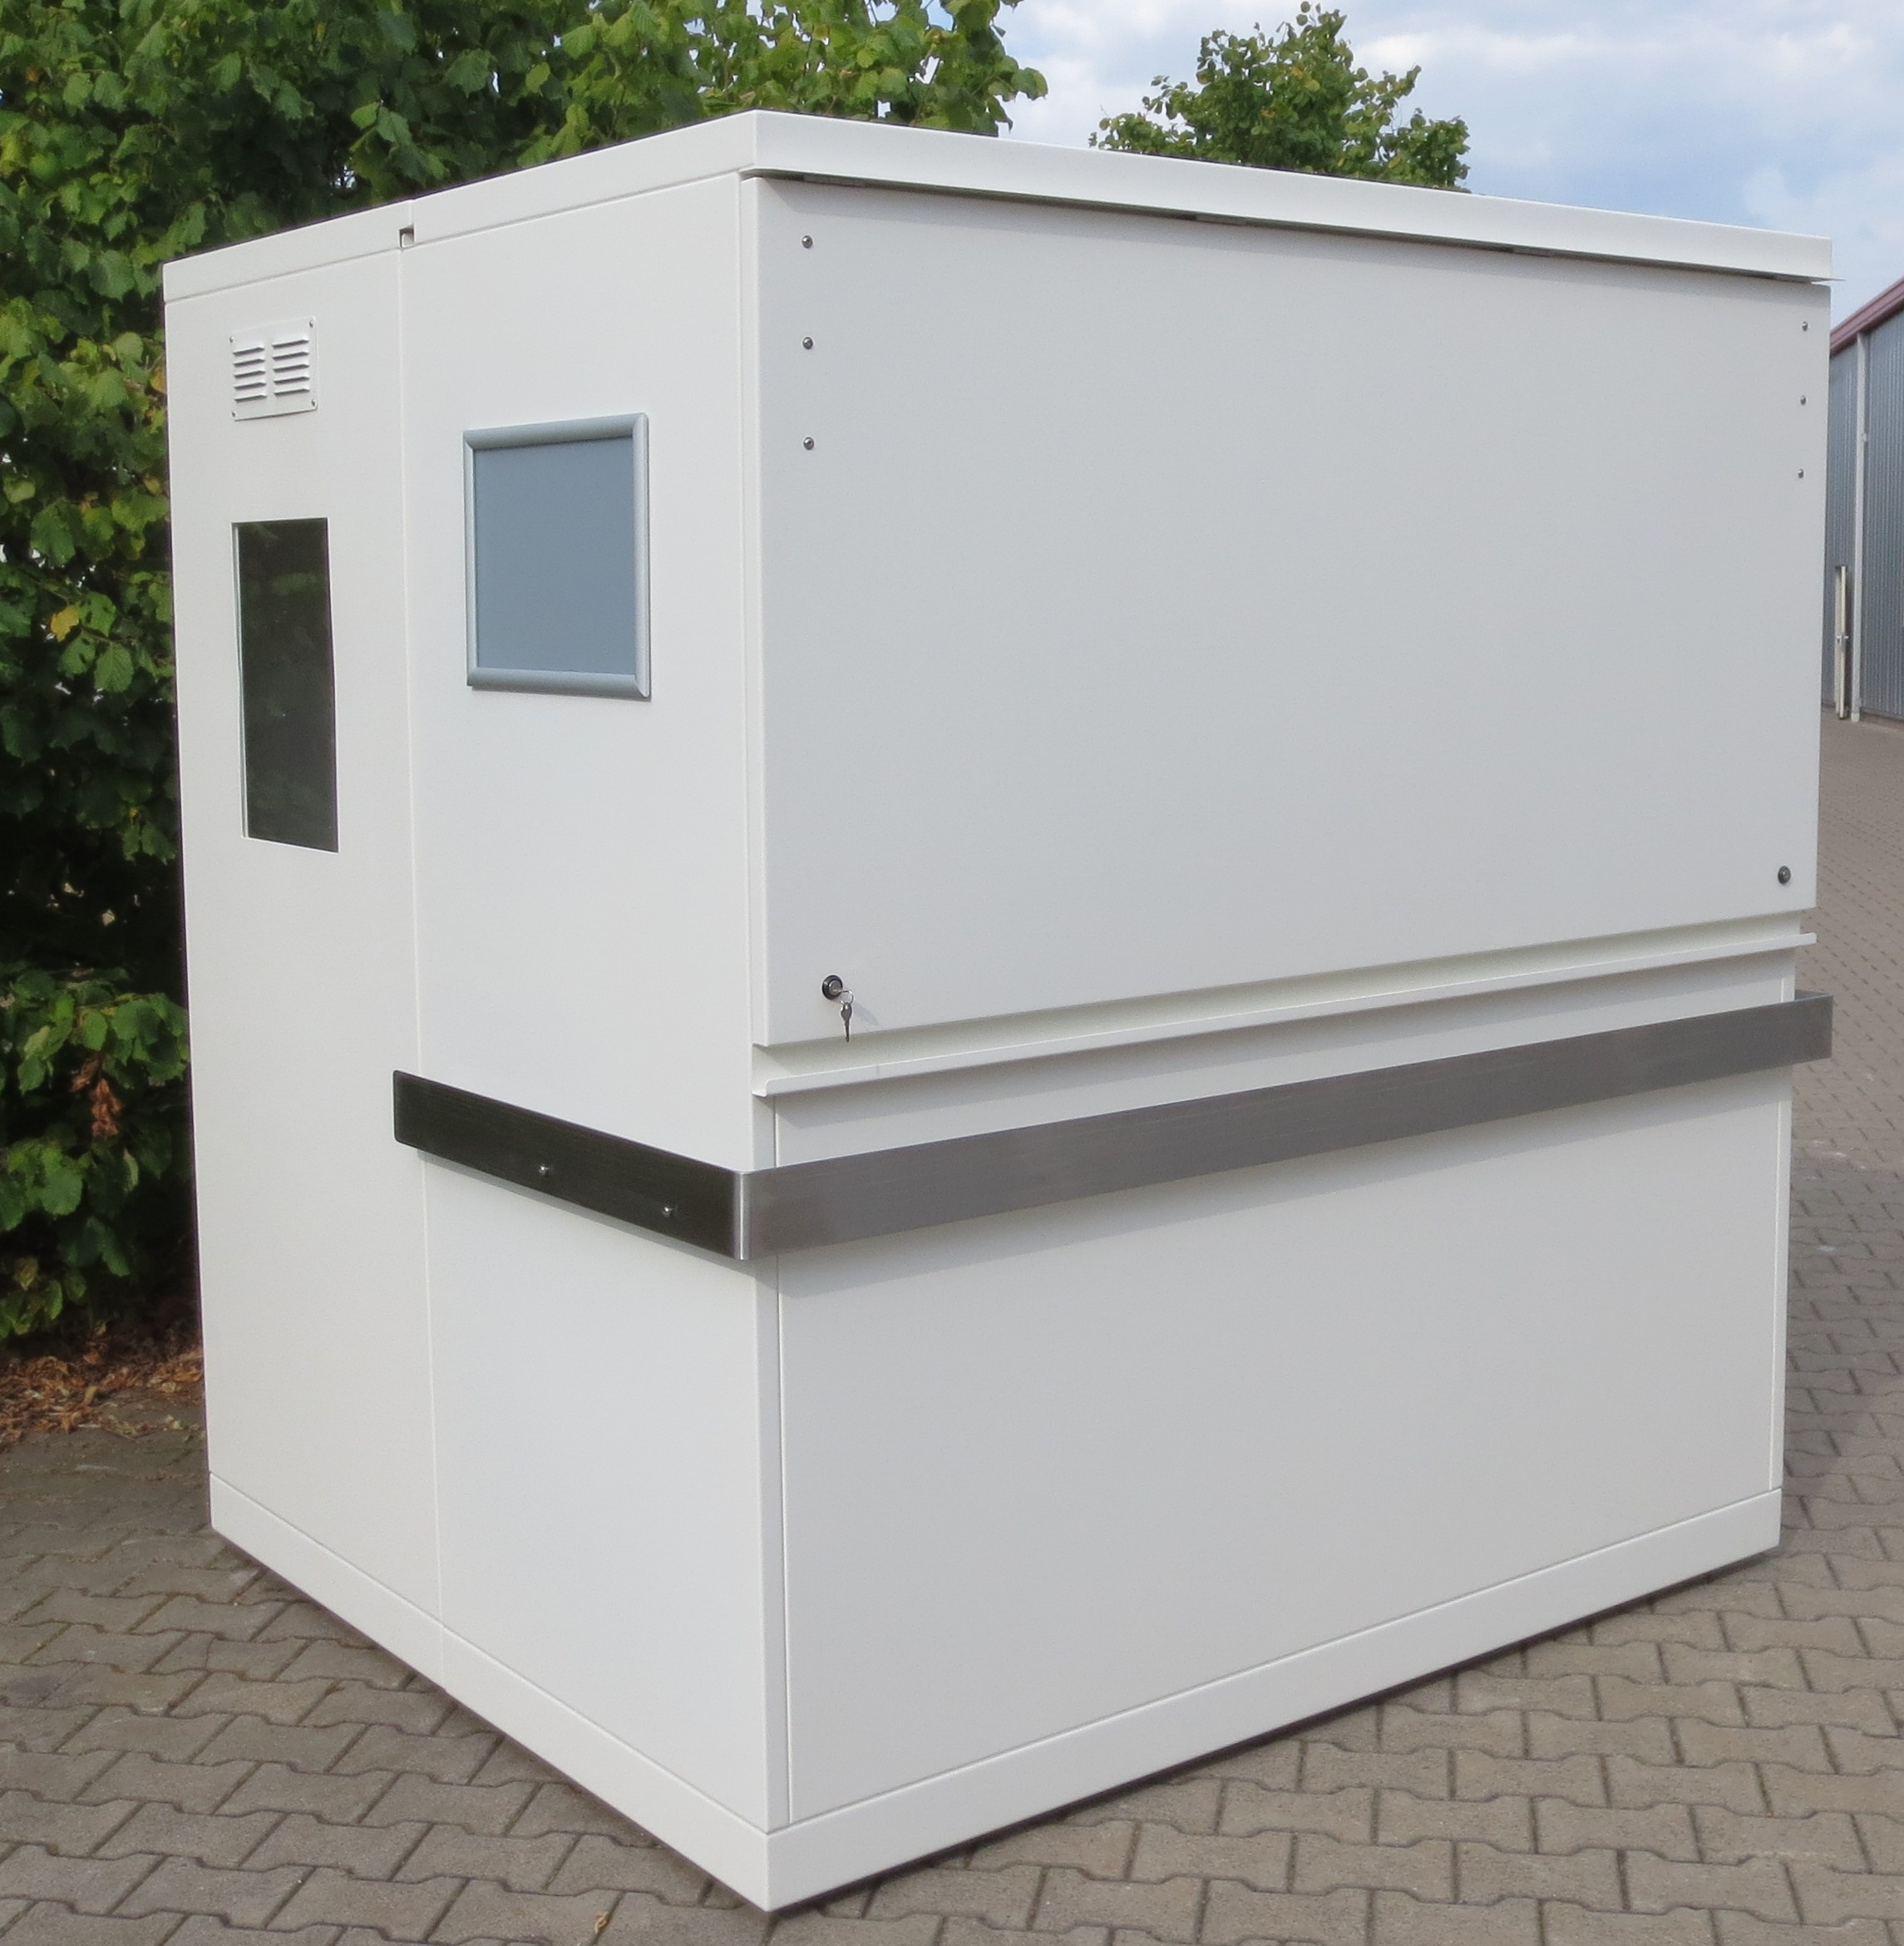 Mobiler Verkaufscontainer Grillcontainer Imbisscontainer Foodstand